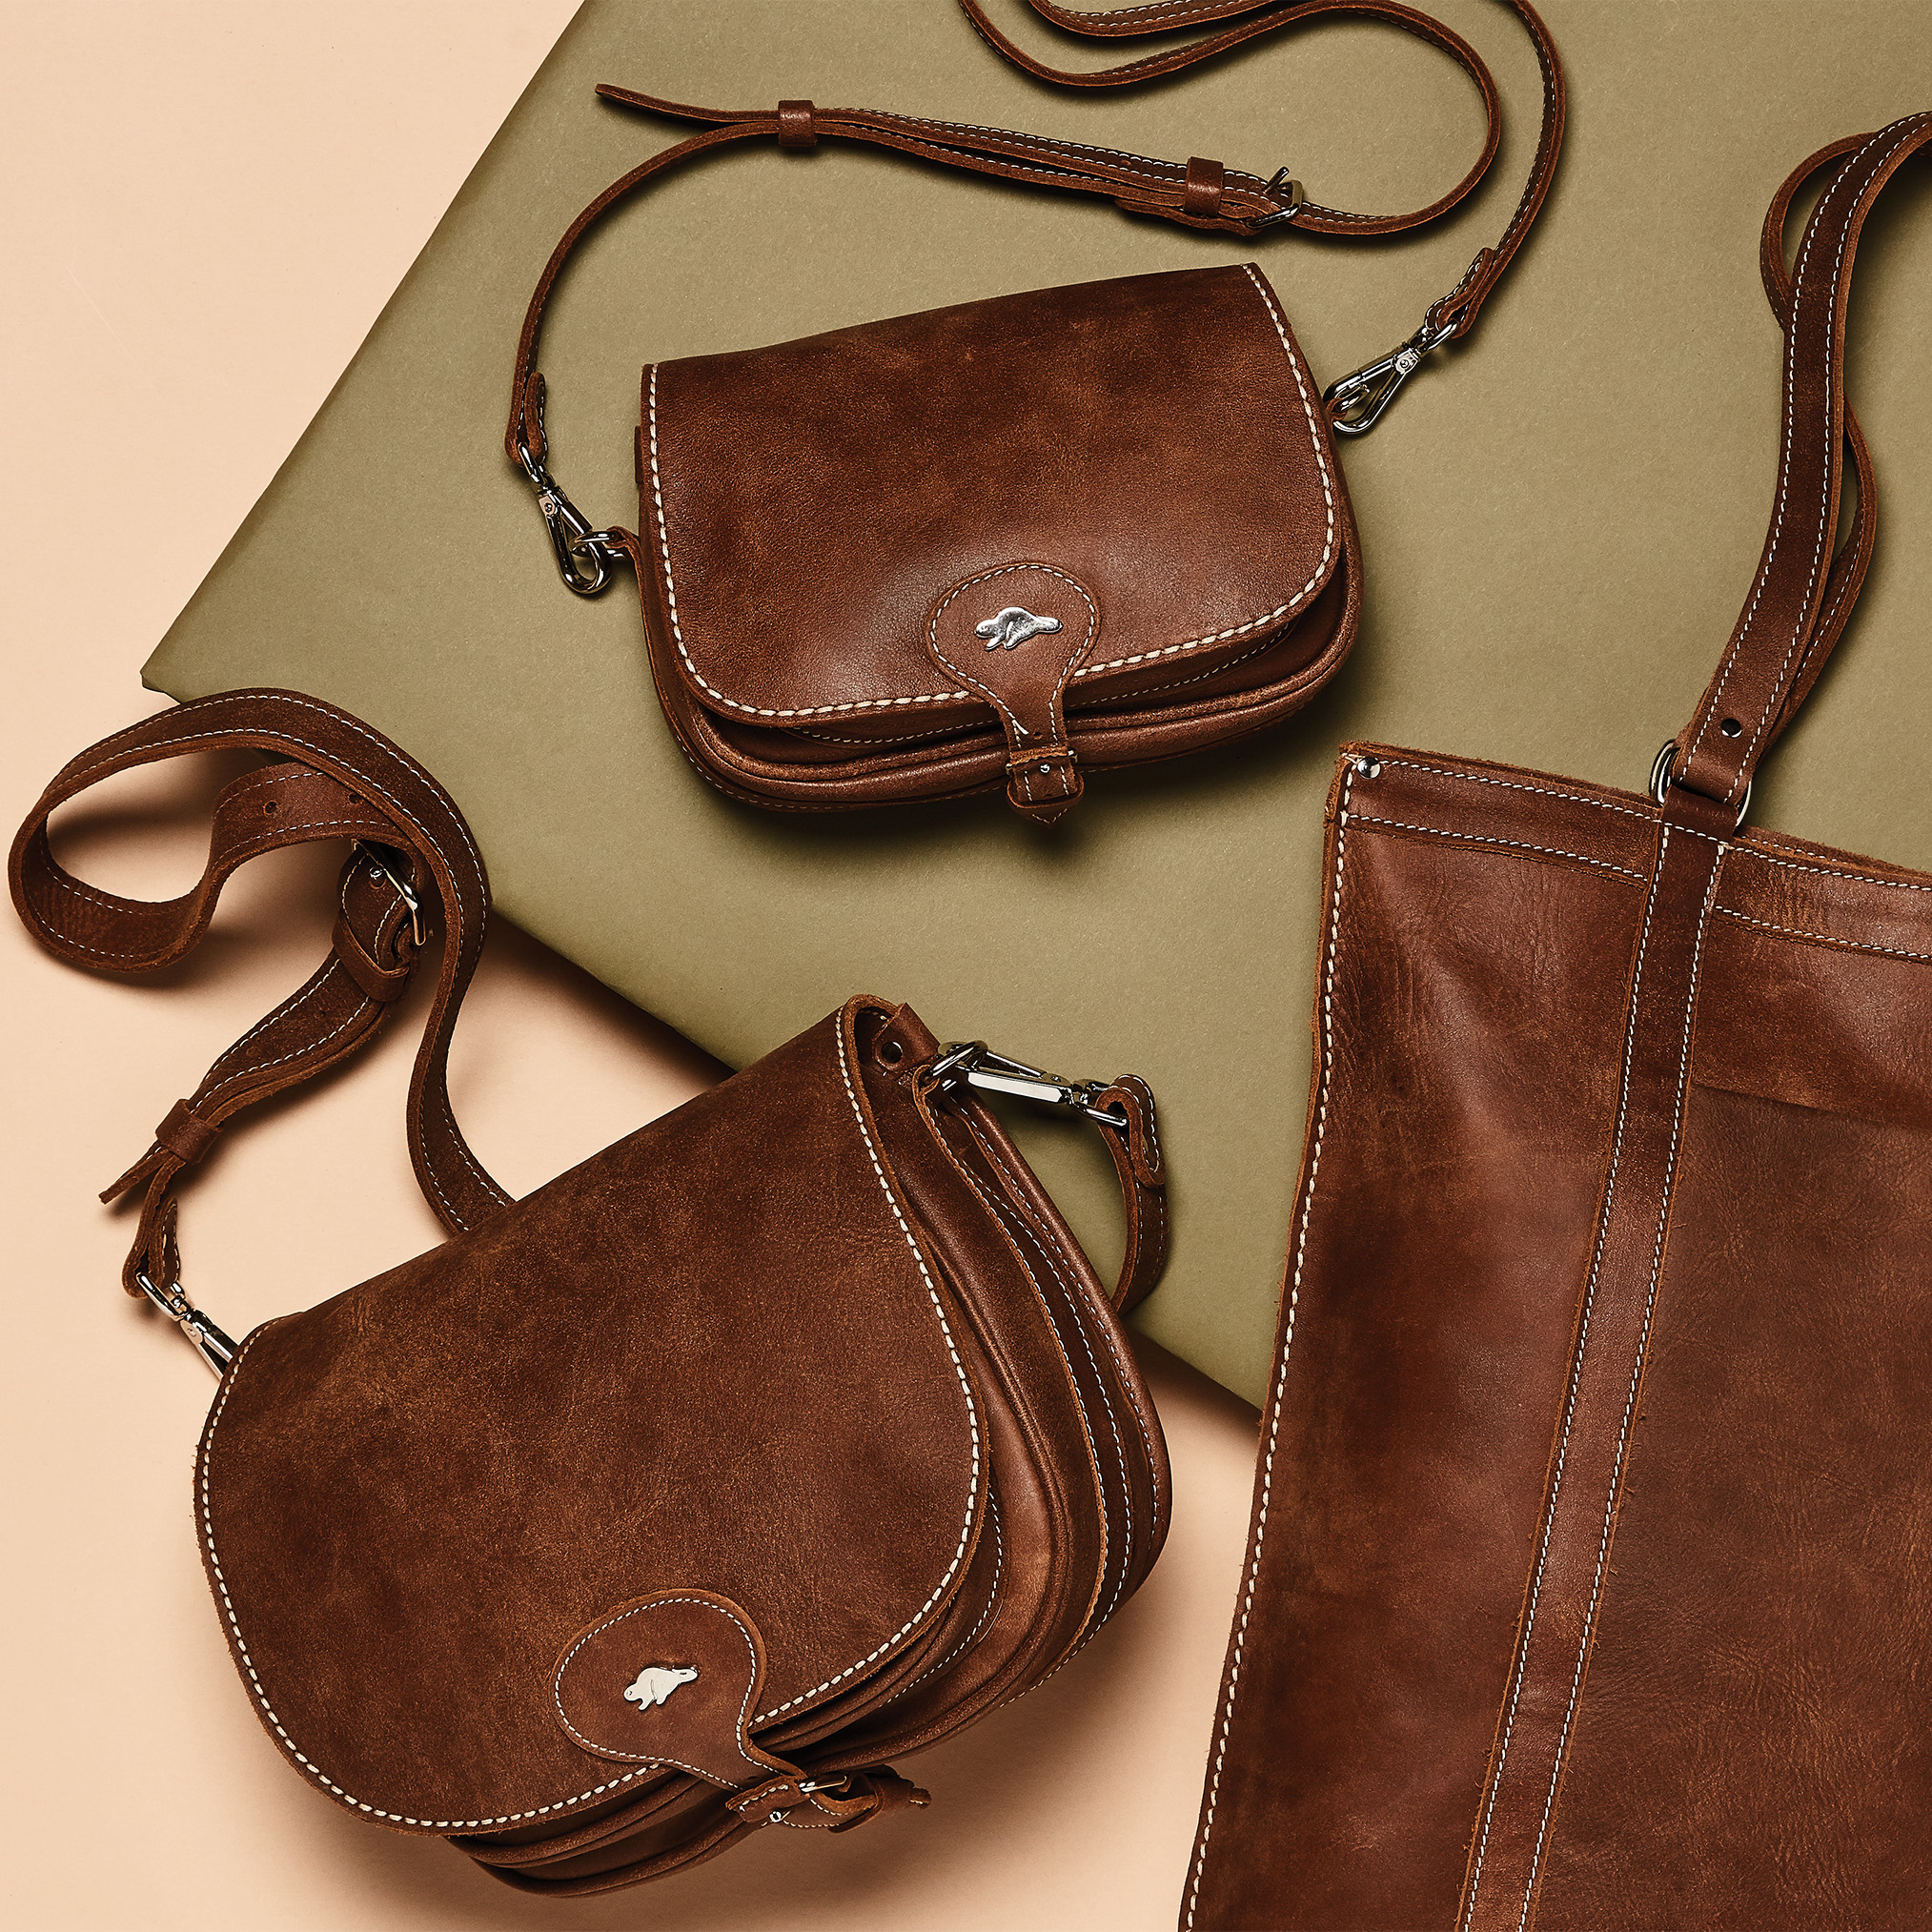 Roots-Leather Tribe Leather Collection-Shop The Look: The Heritage Leather Collection-E